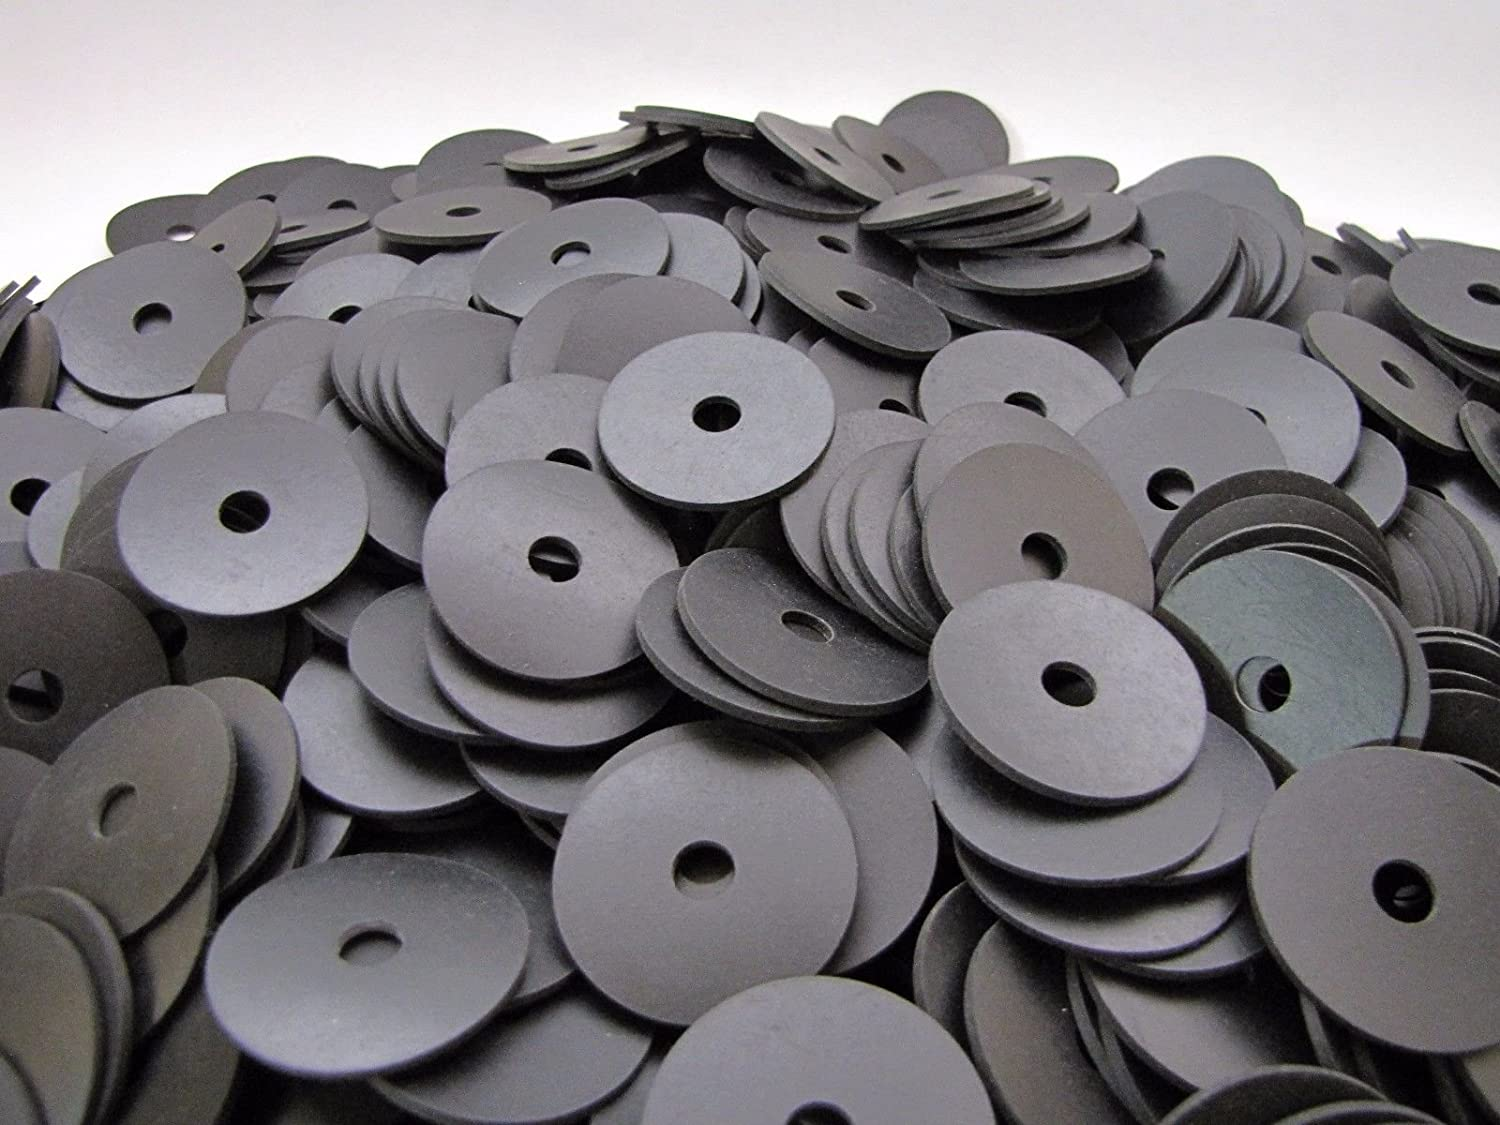 100 Neoprene Rubber Washers 1 1 2 OD x 5 16 ID x 1 16 Thickness Endeavor Series